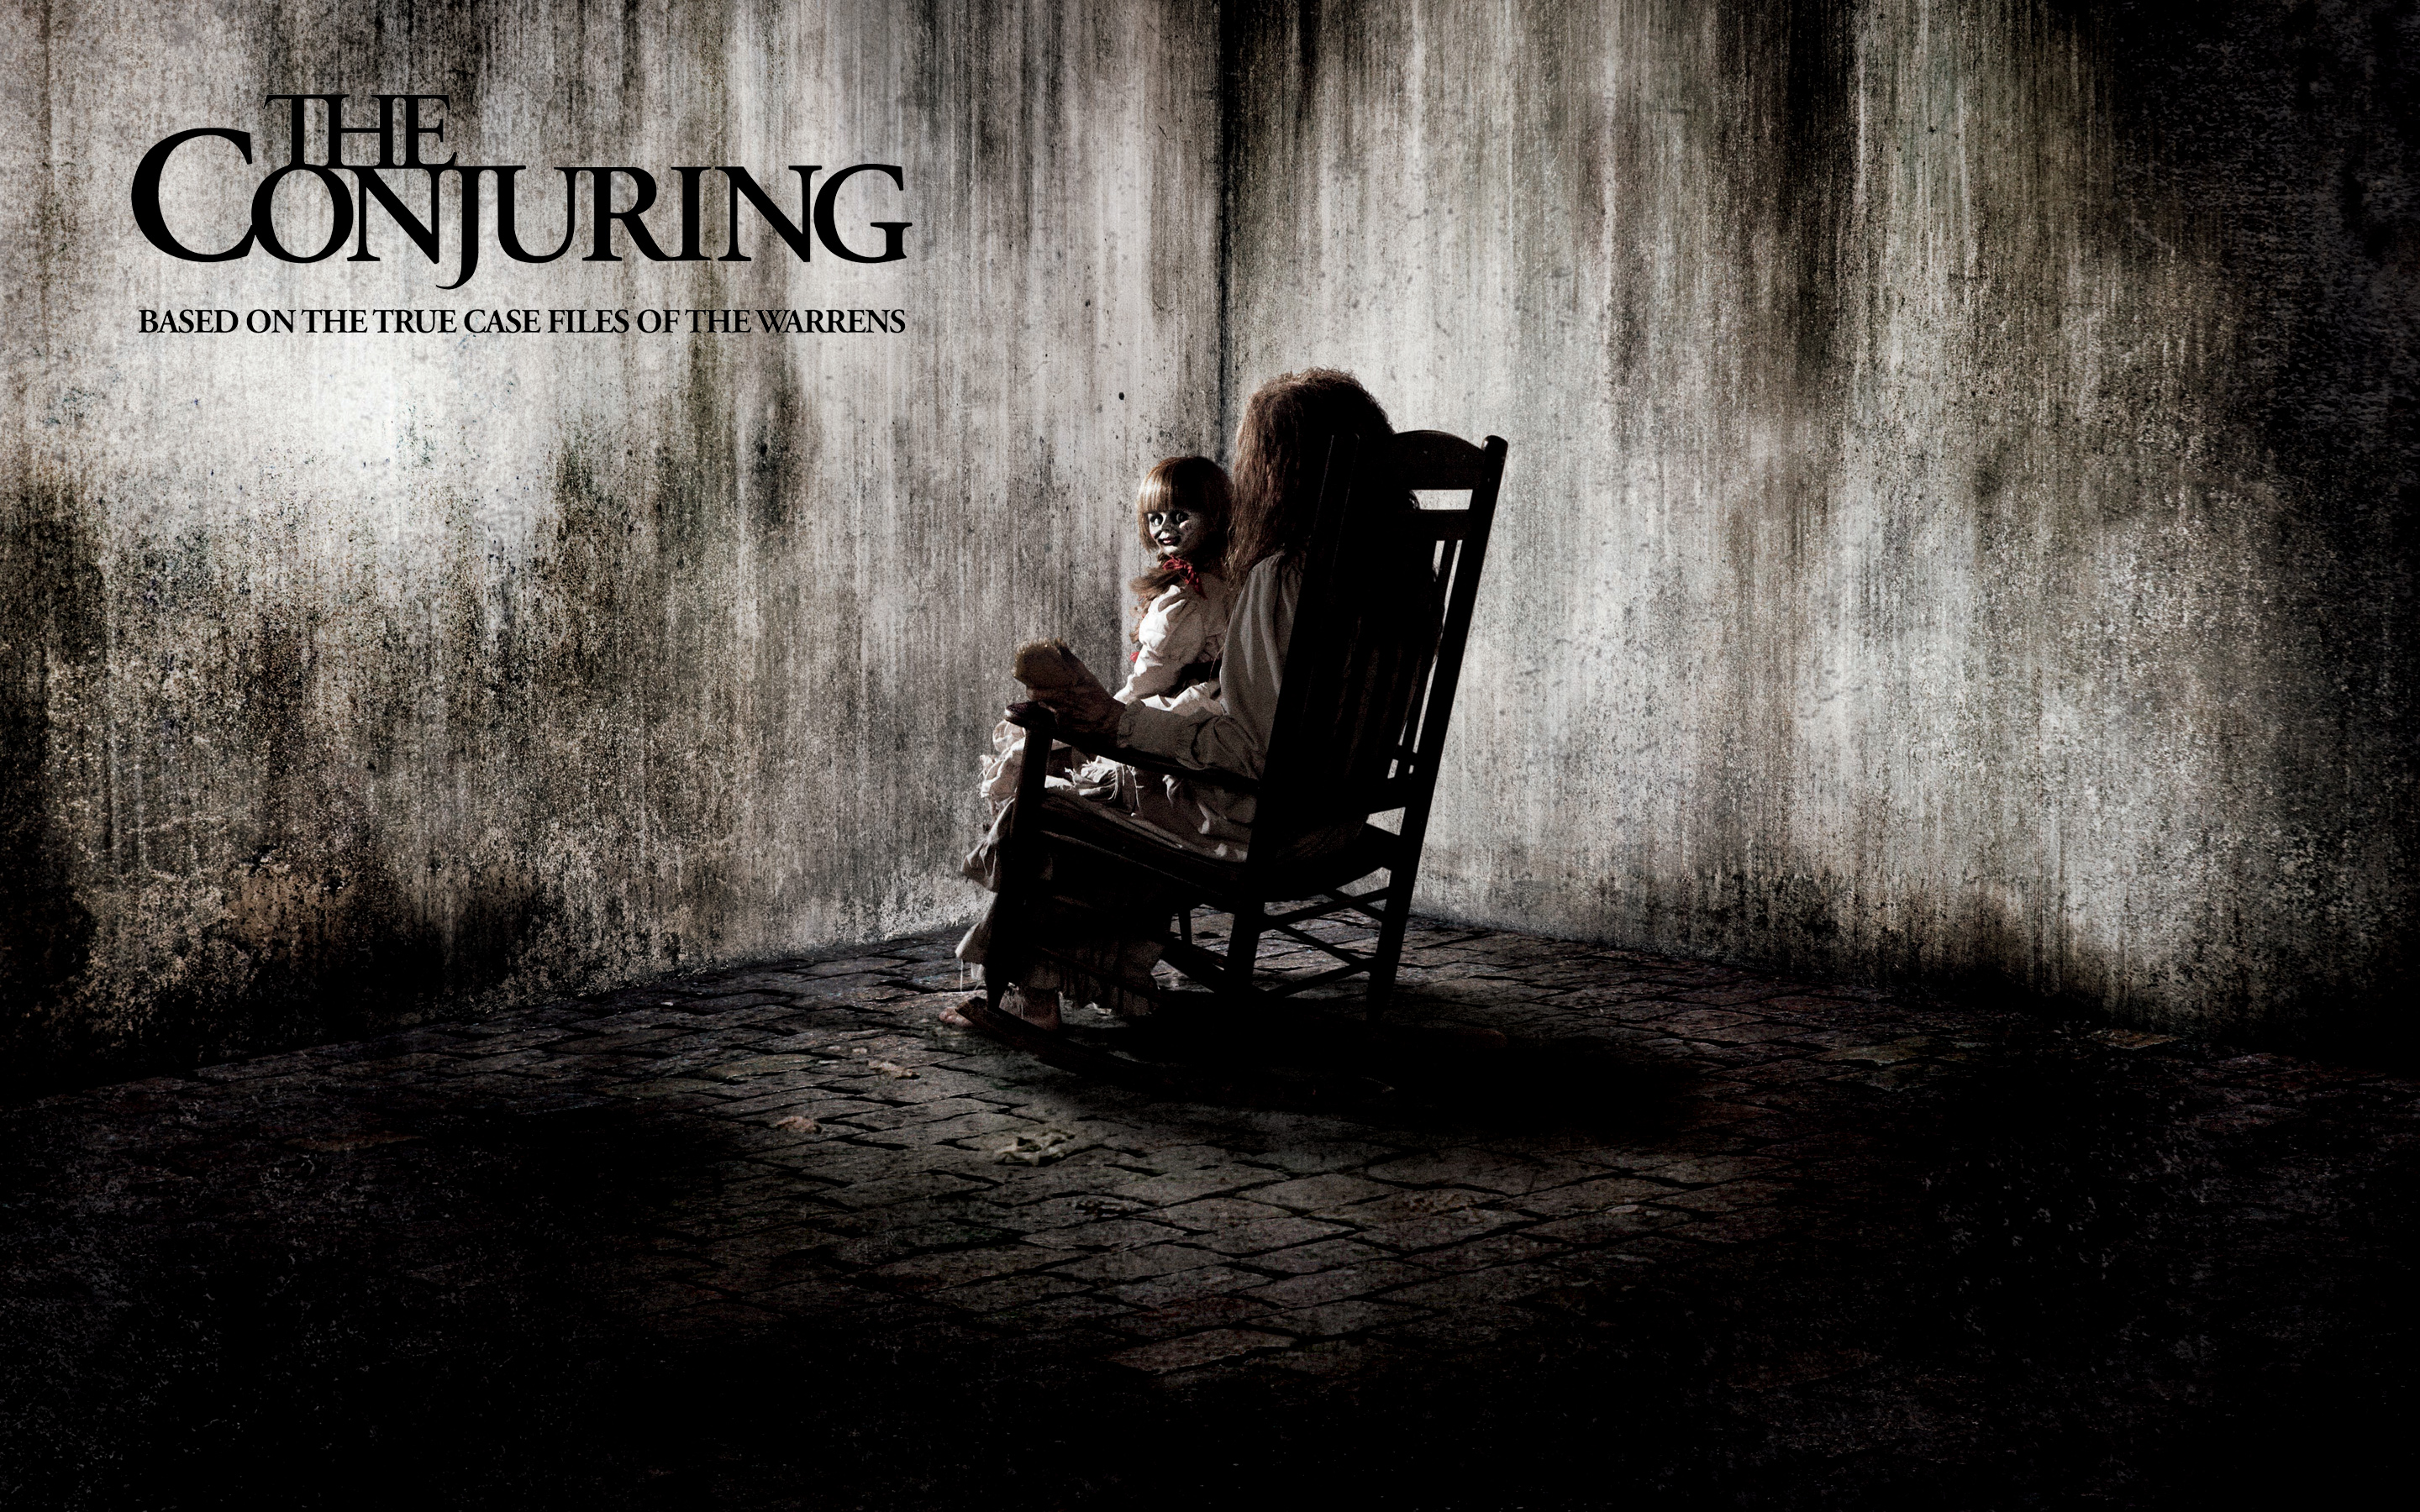 The Conjuring wallpaper 1